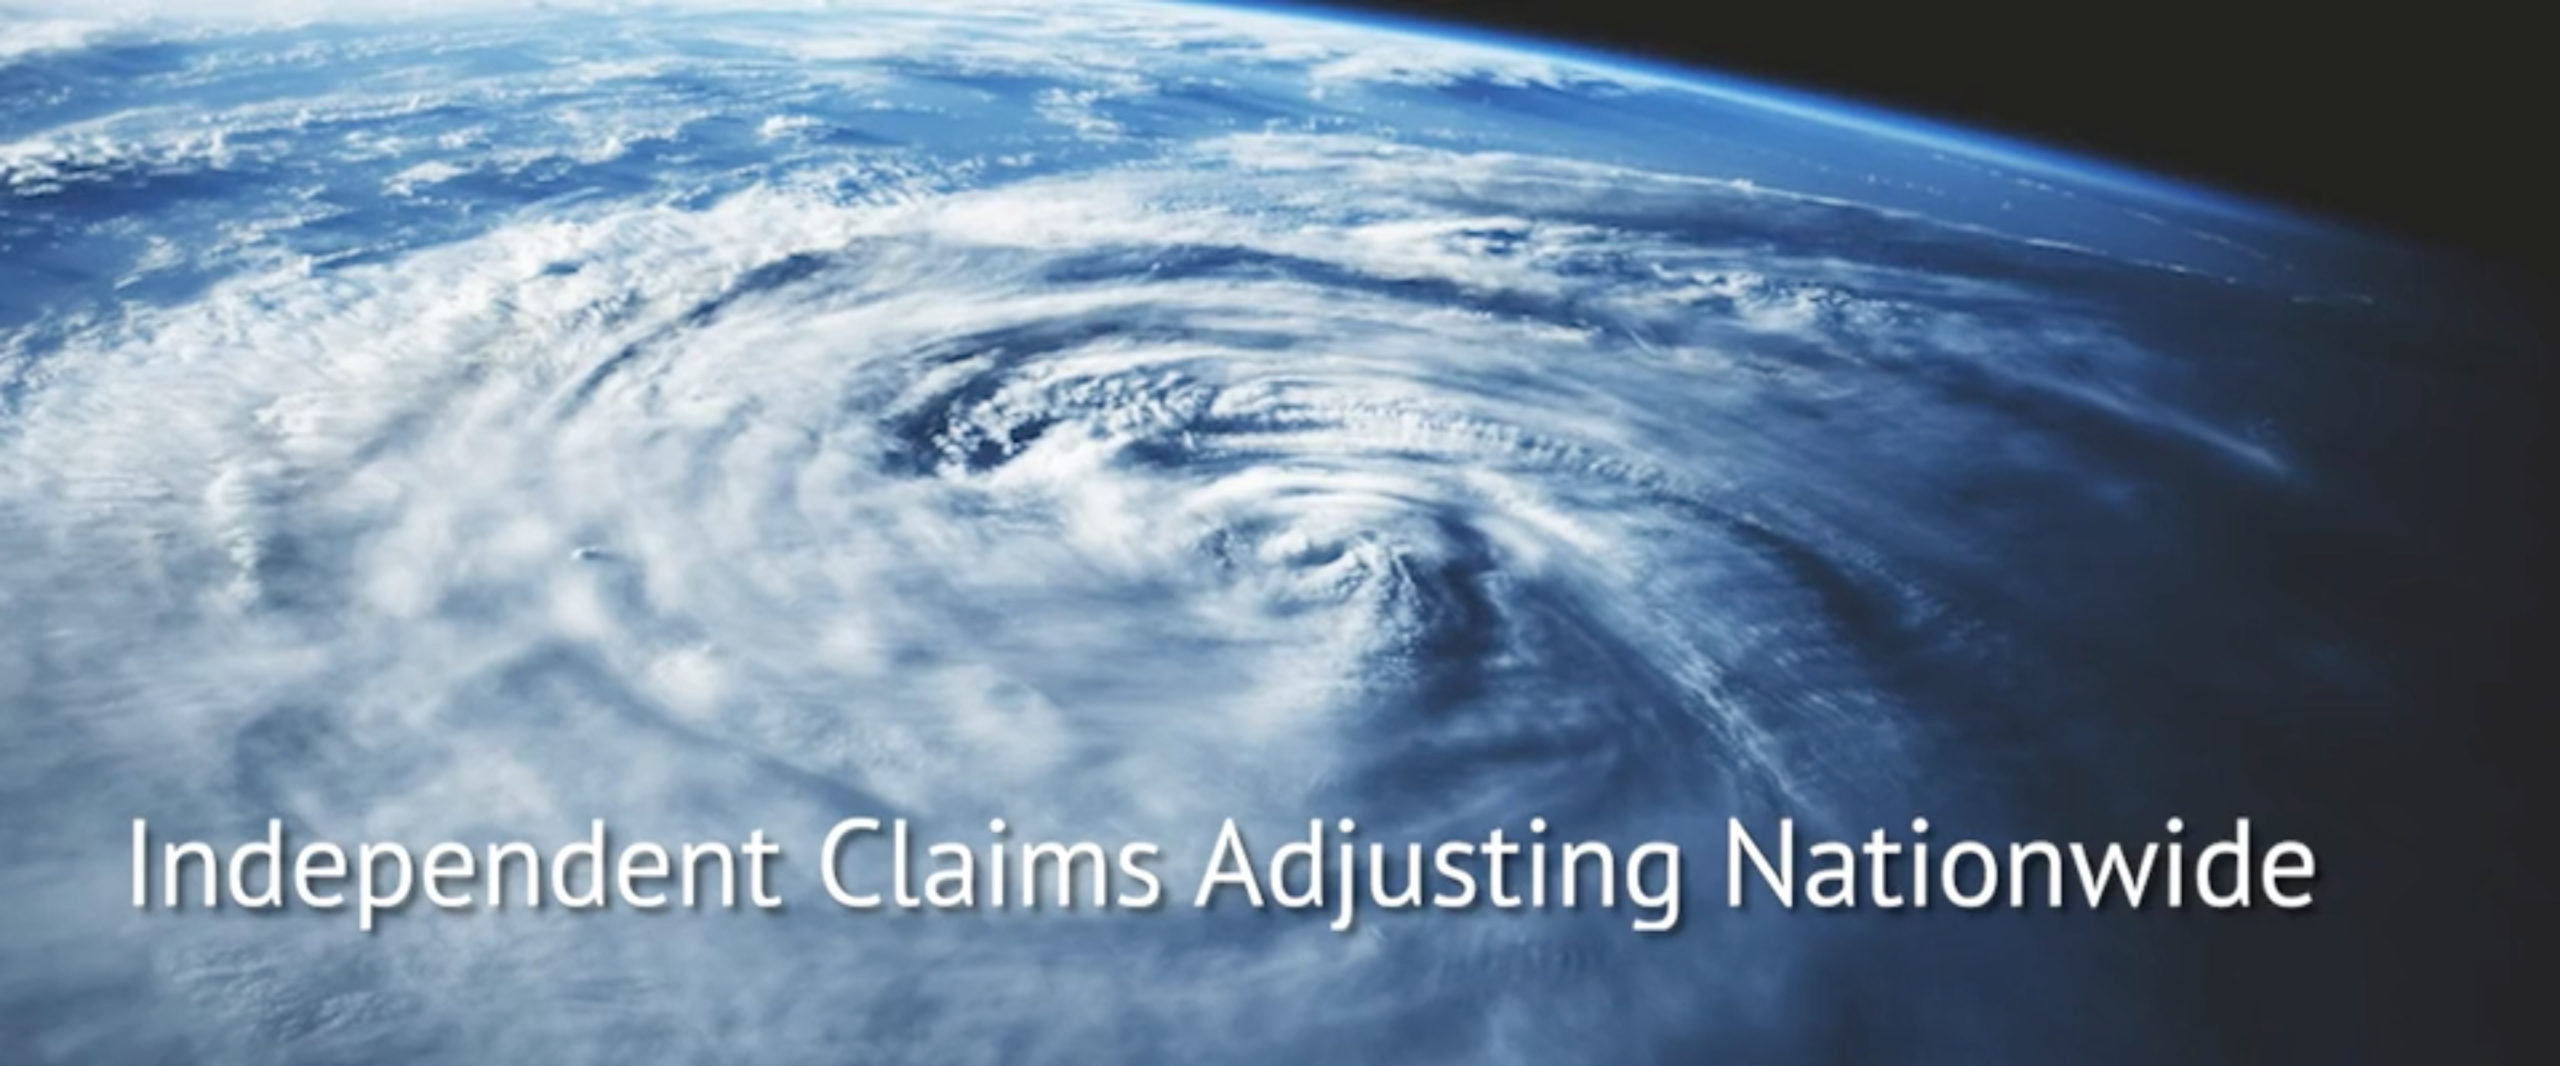 Independent Claims Adjusting Nationwide